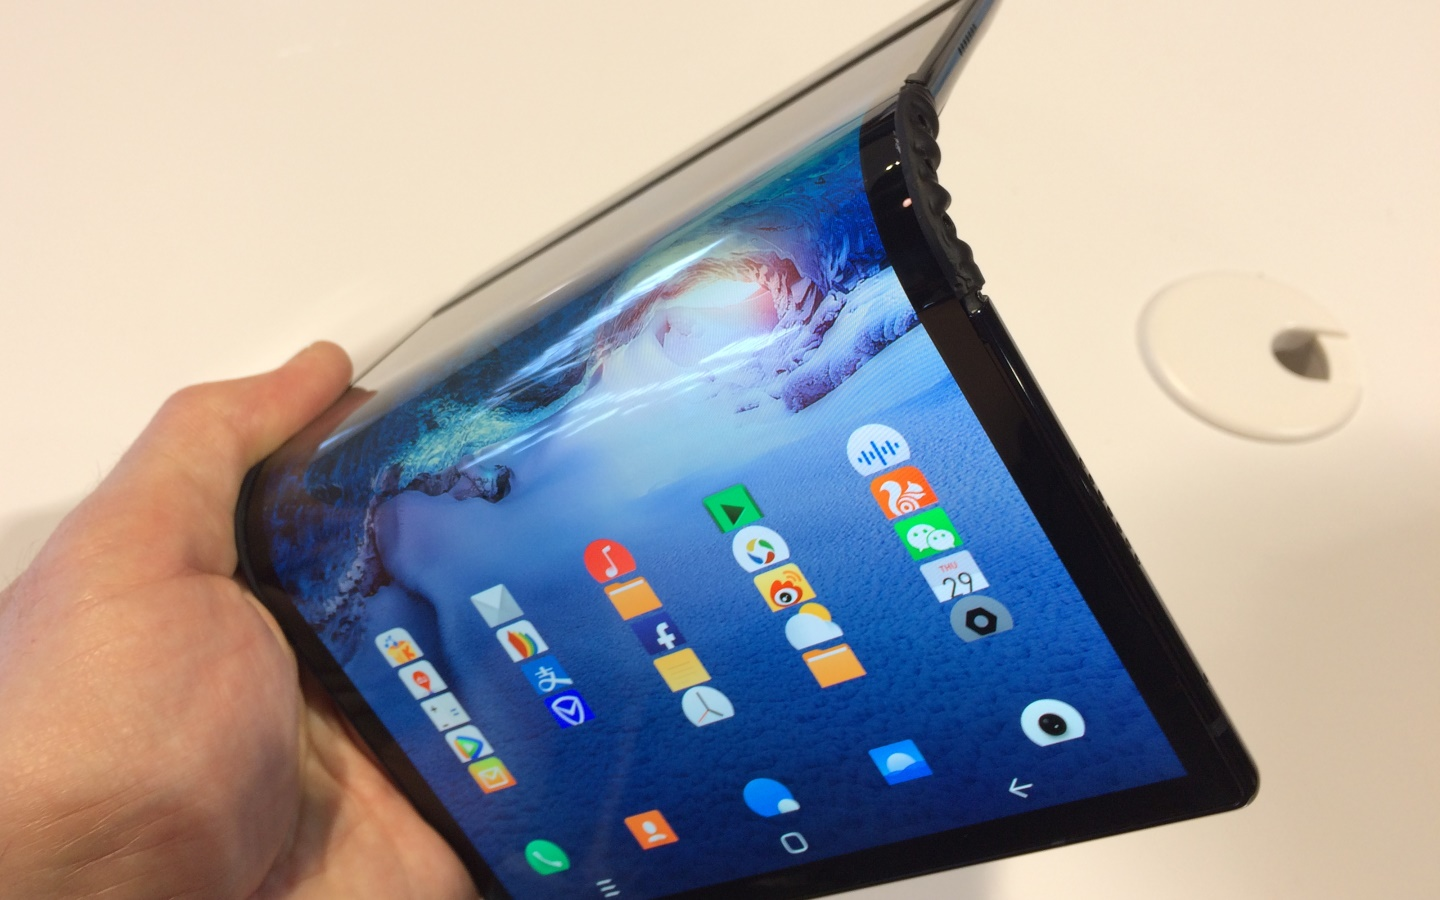 Bendy tablet screen